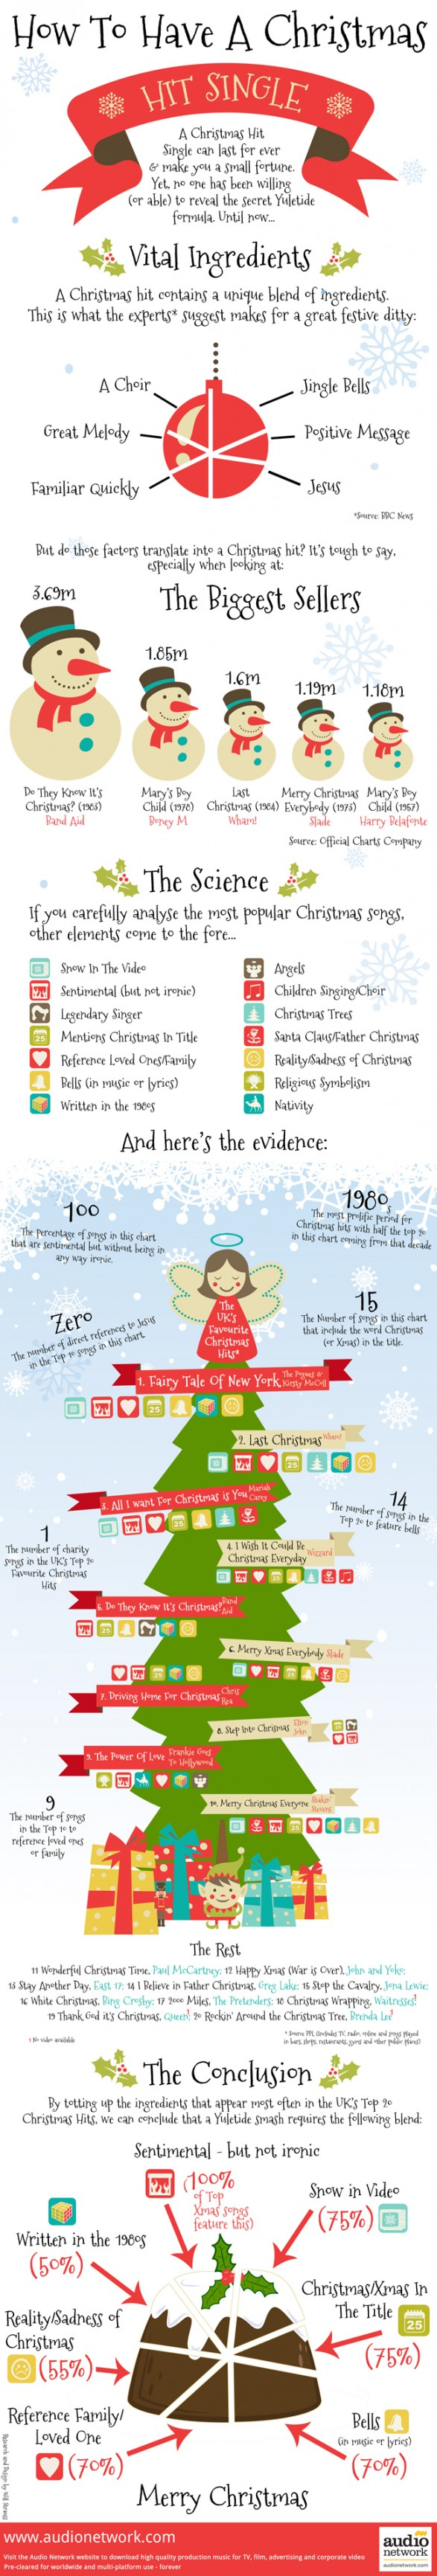 English is FUNtastic: How To Have A Christmas Hit Single   angol ...